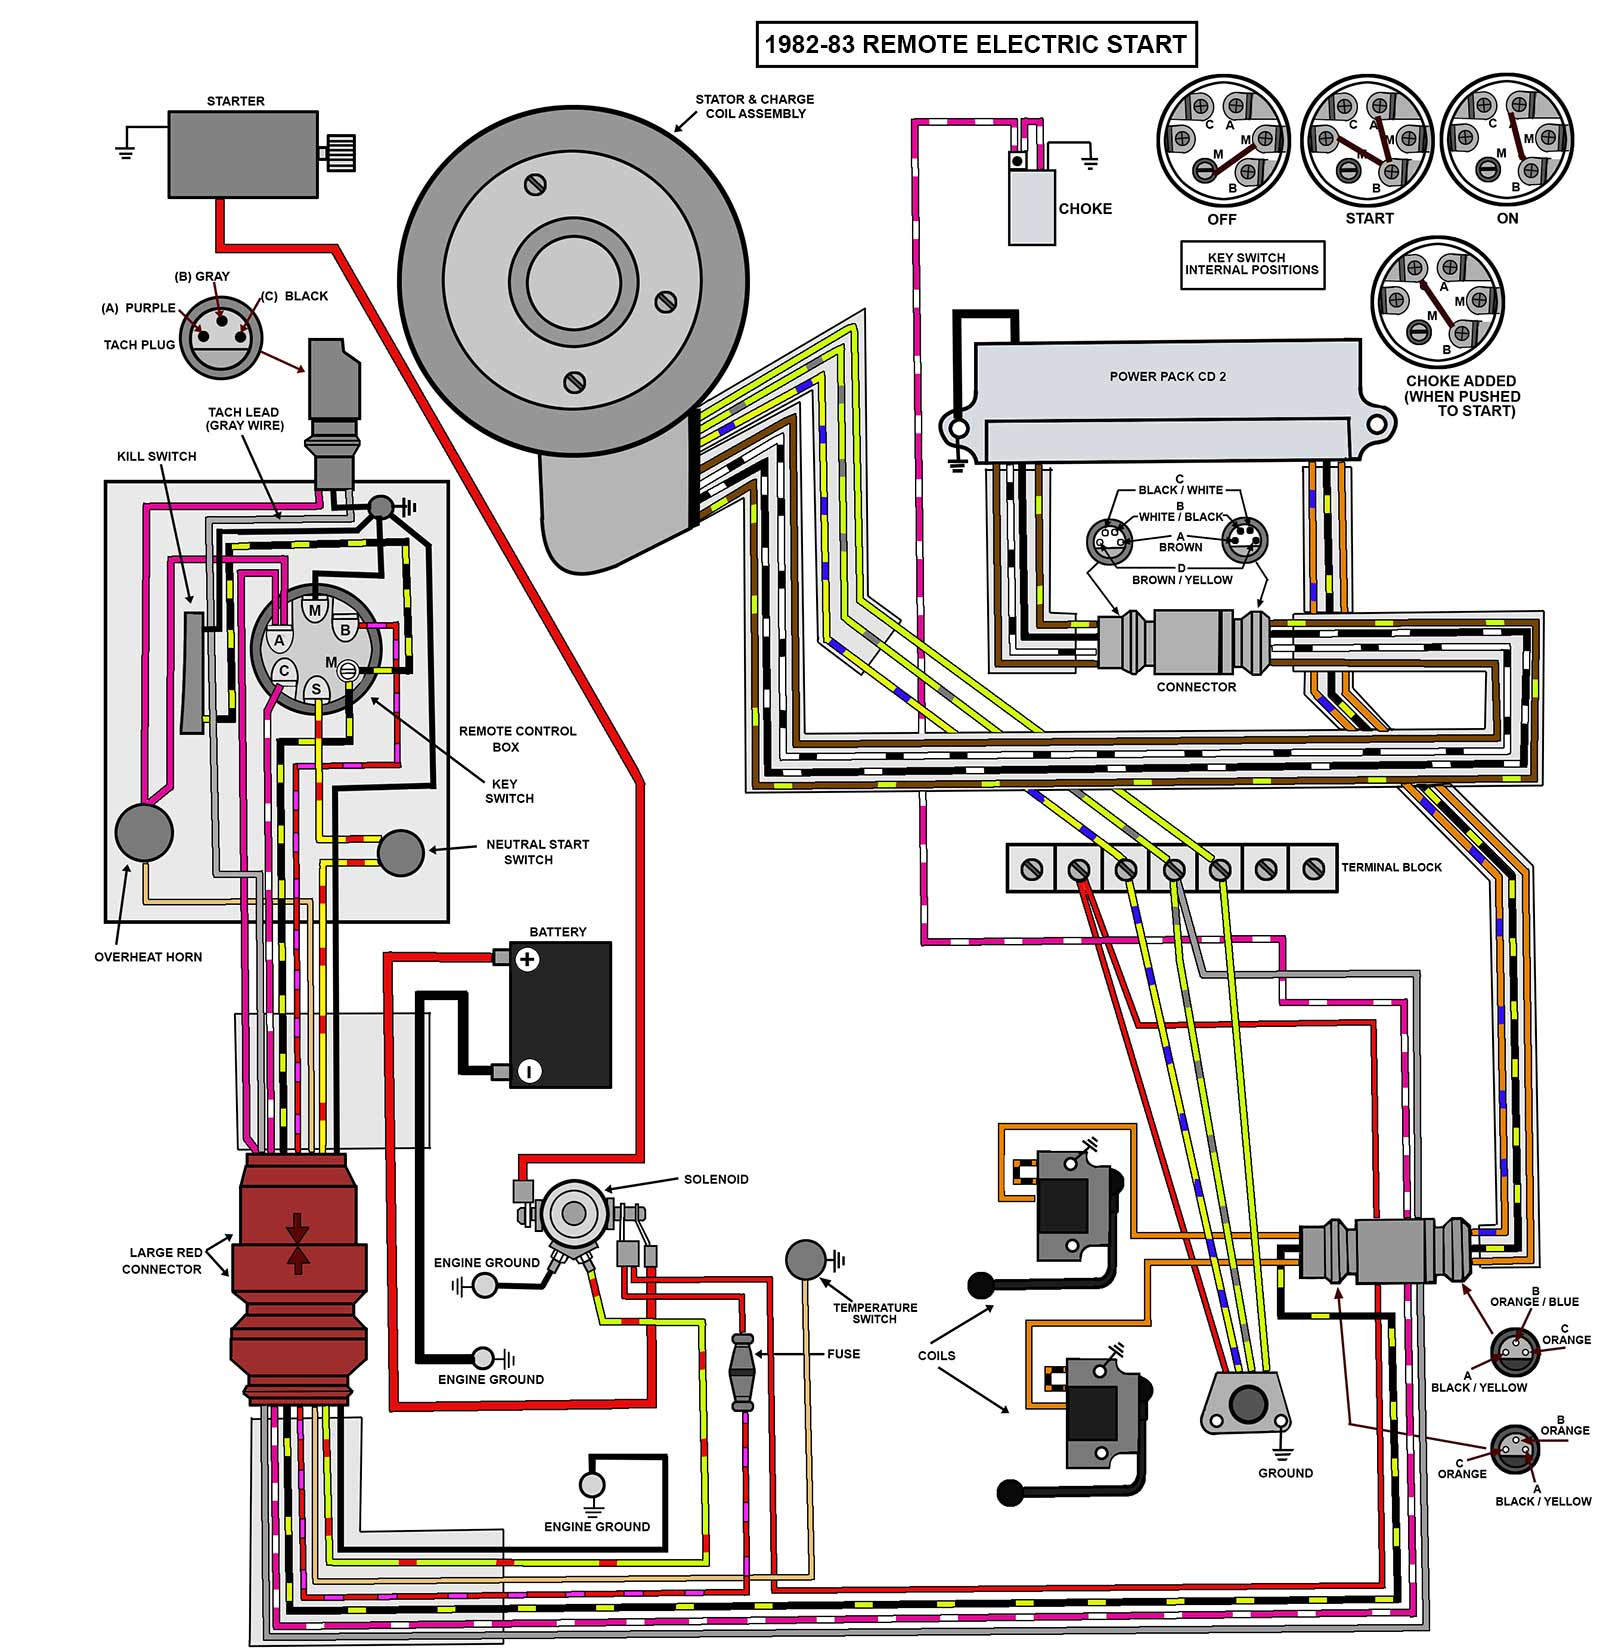 25_35_82 83_elec remote mastertech marine evinrude johnson outboard wiring diagrams Yamaha Outboard Wiring Diagram at creativeand.co